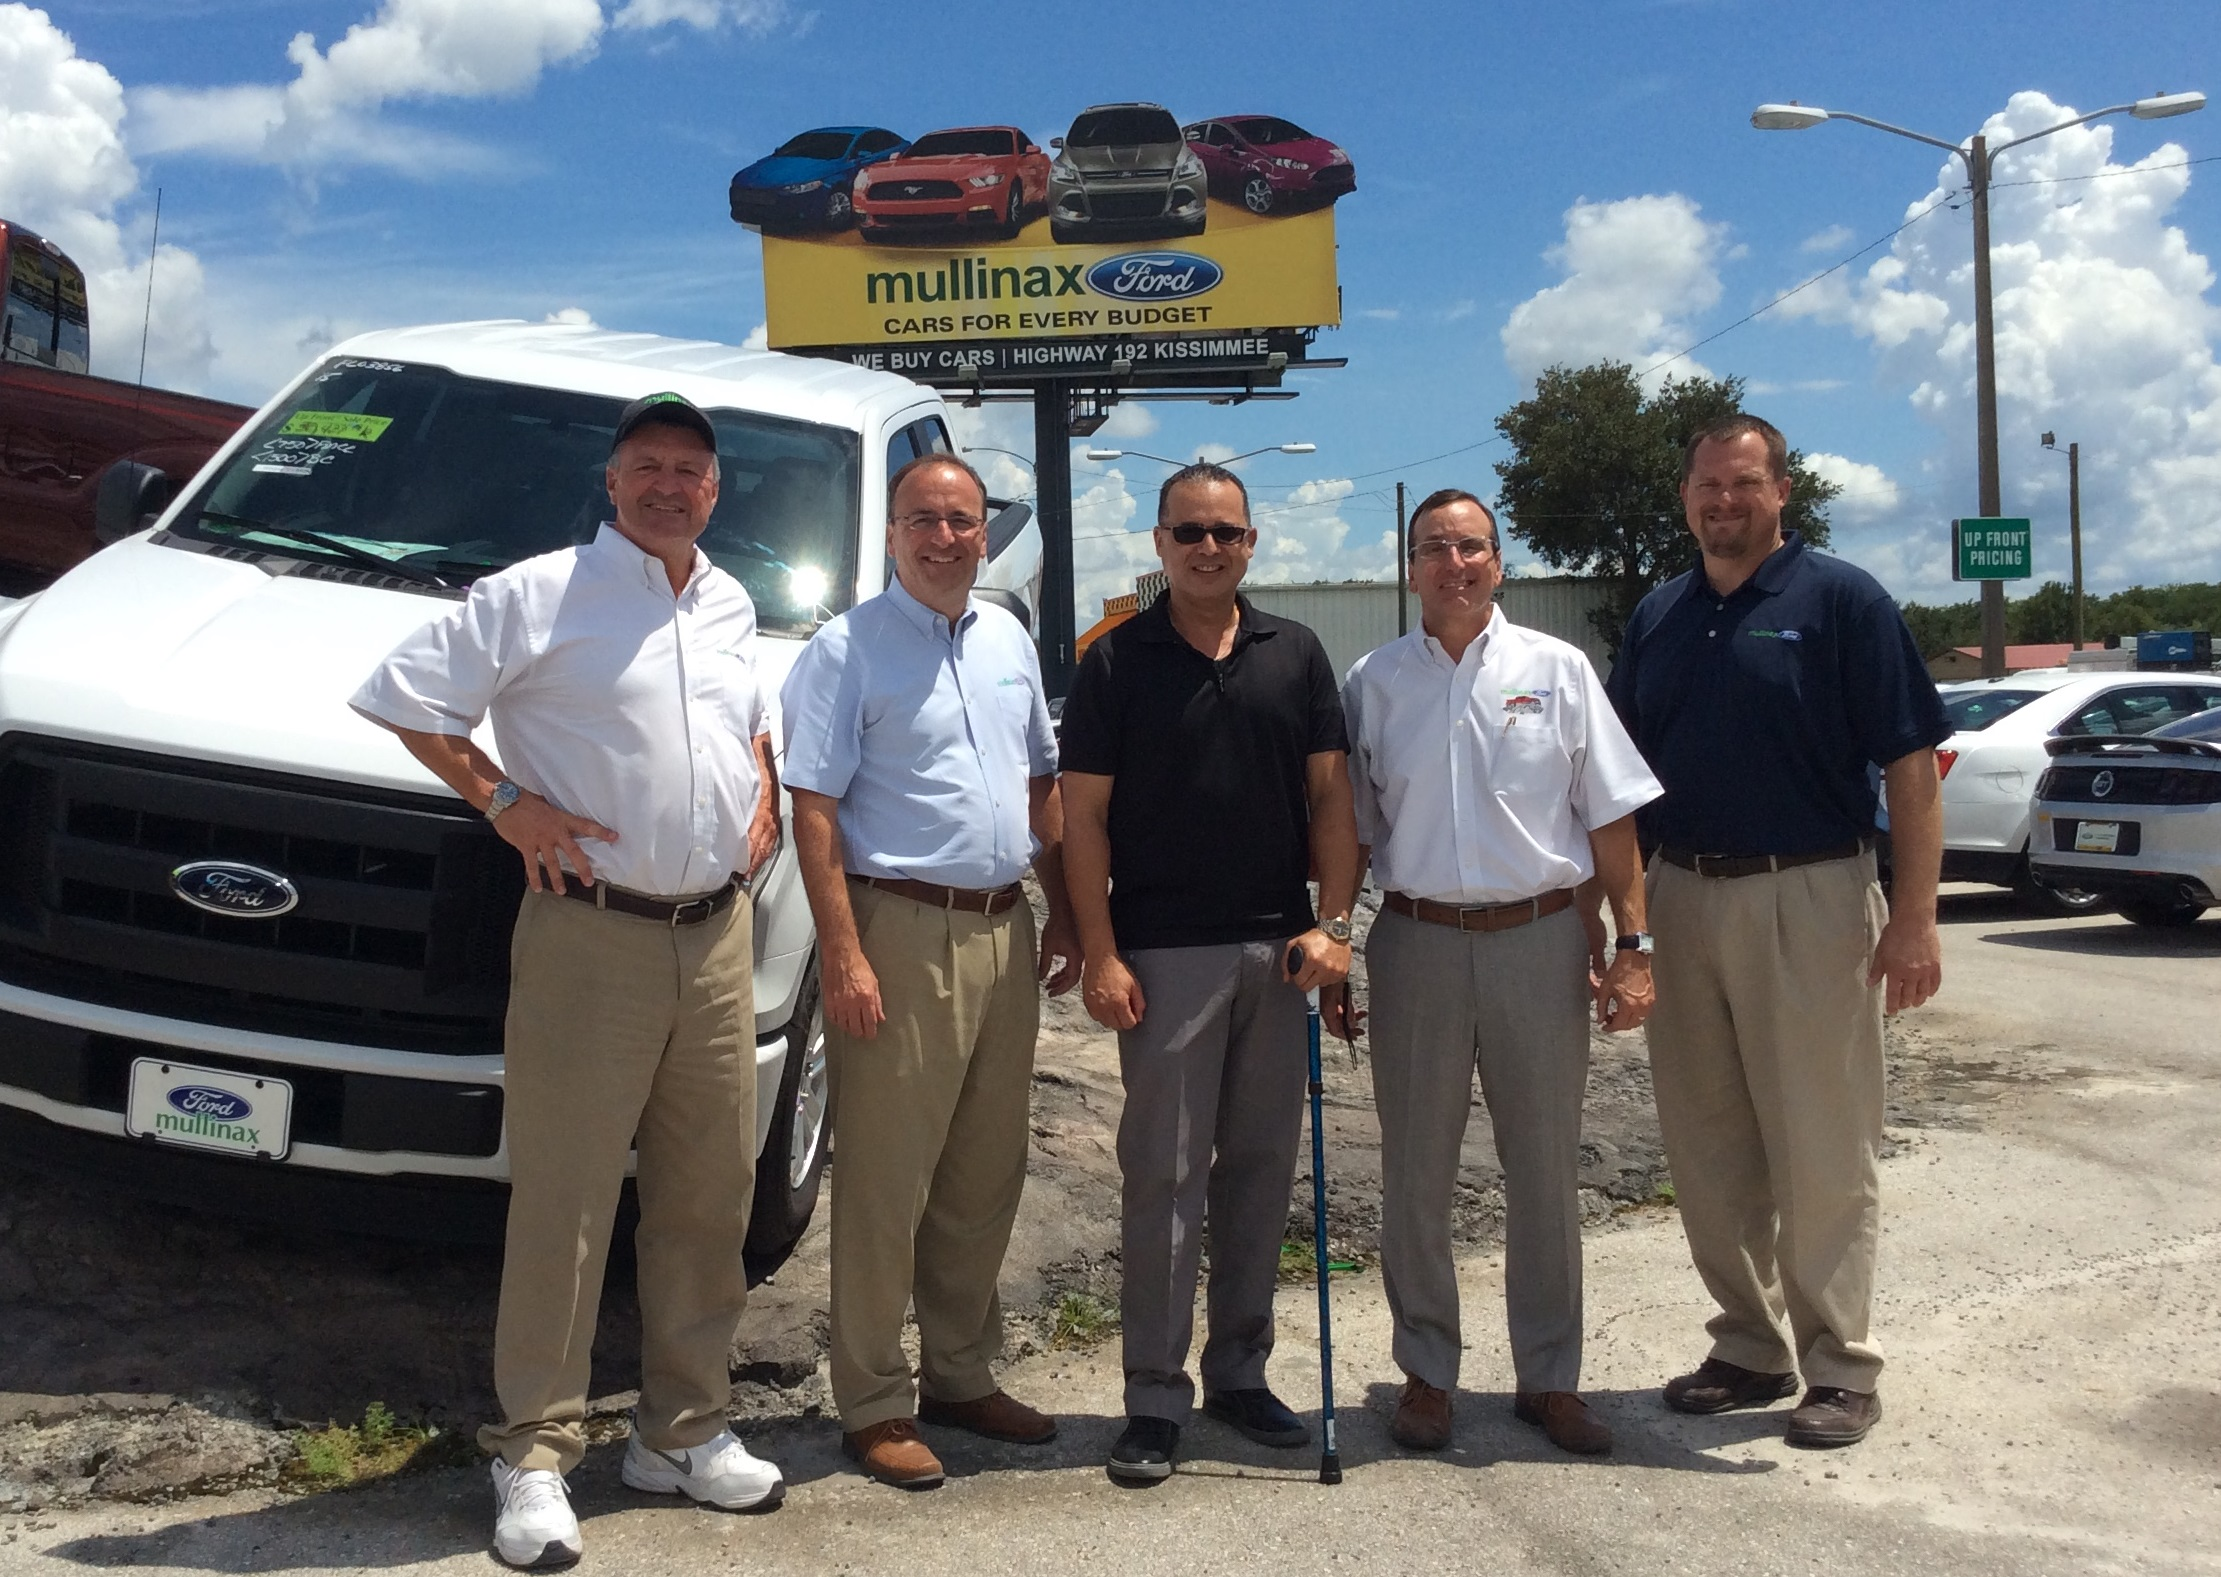 Mullinax Ford winners of a brand new Ford 150 pickup truck